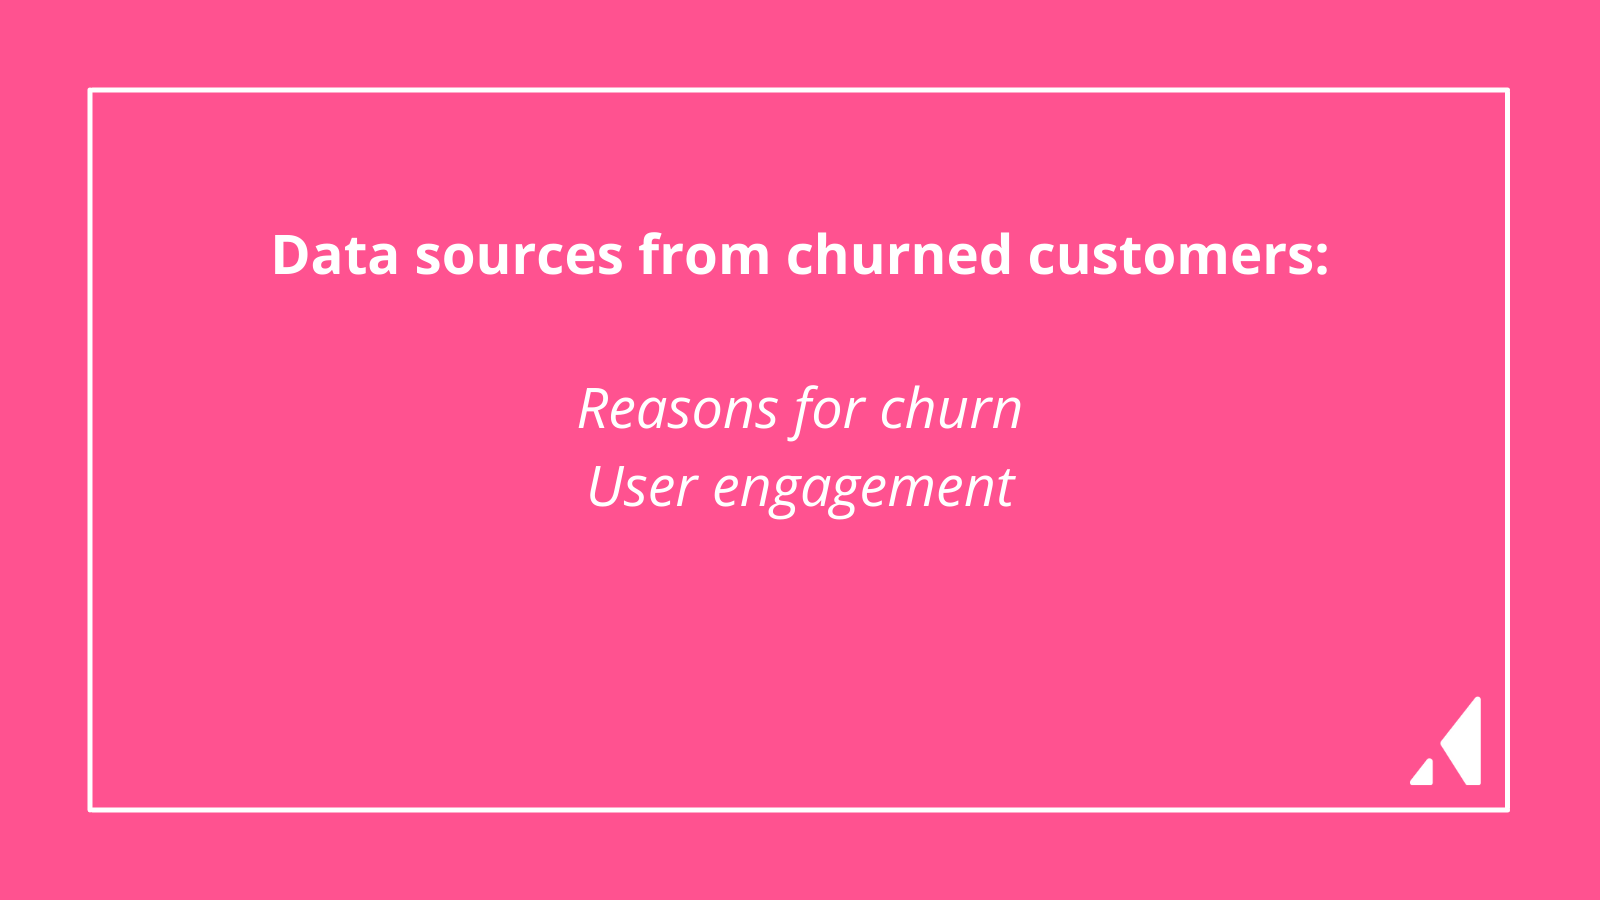 Data sources from churned customers